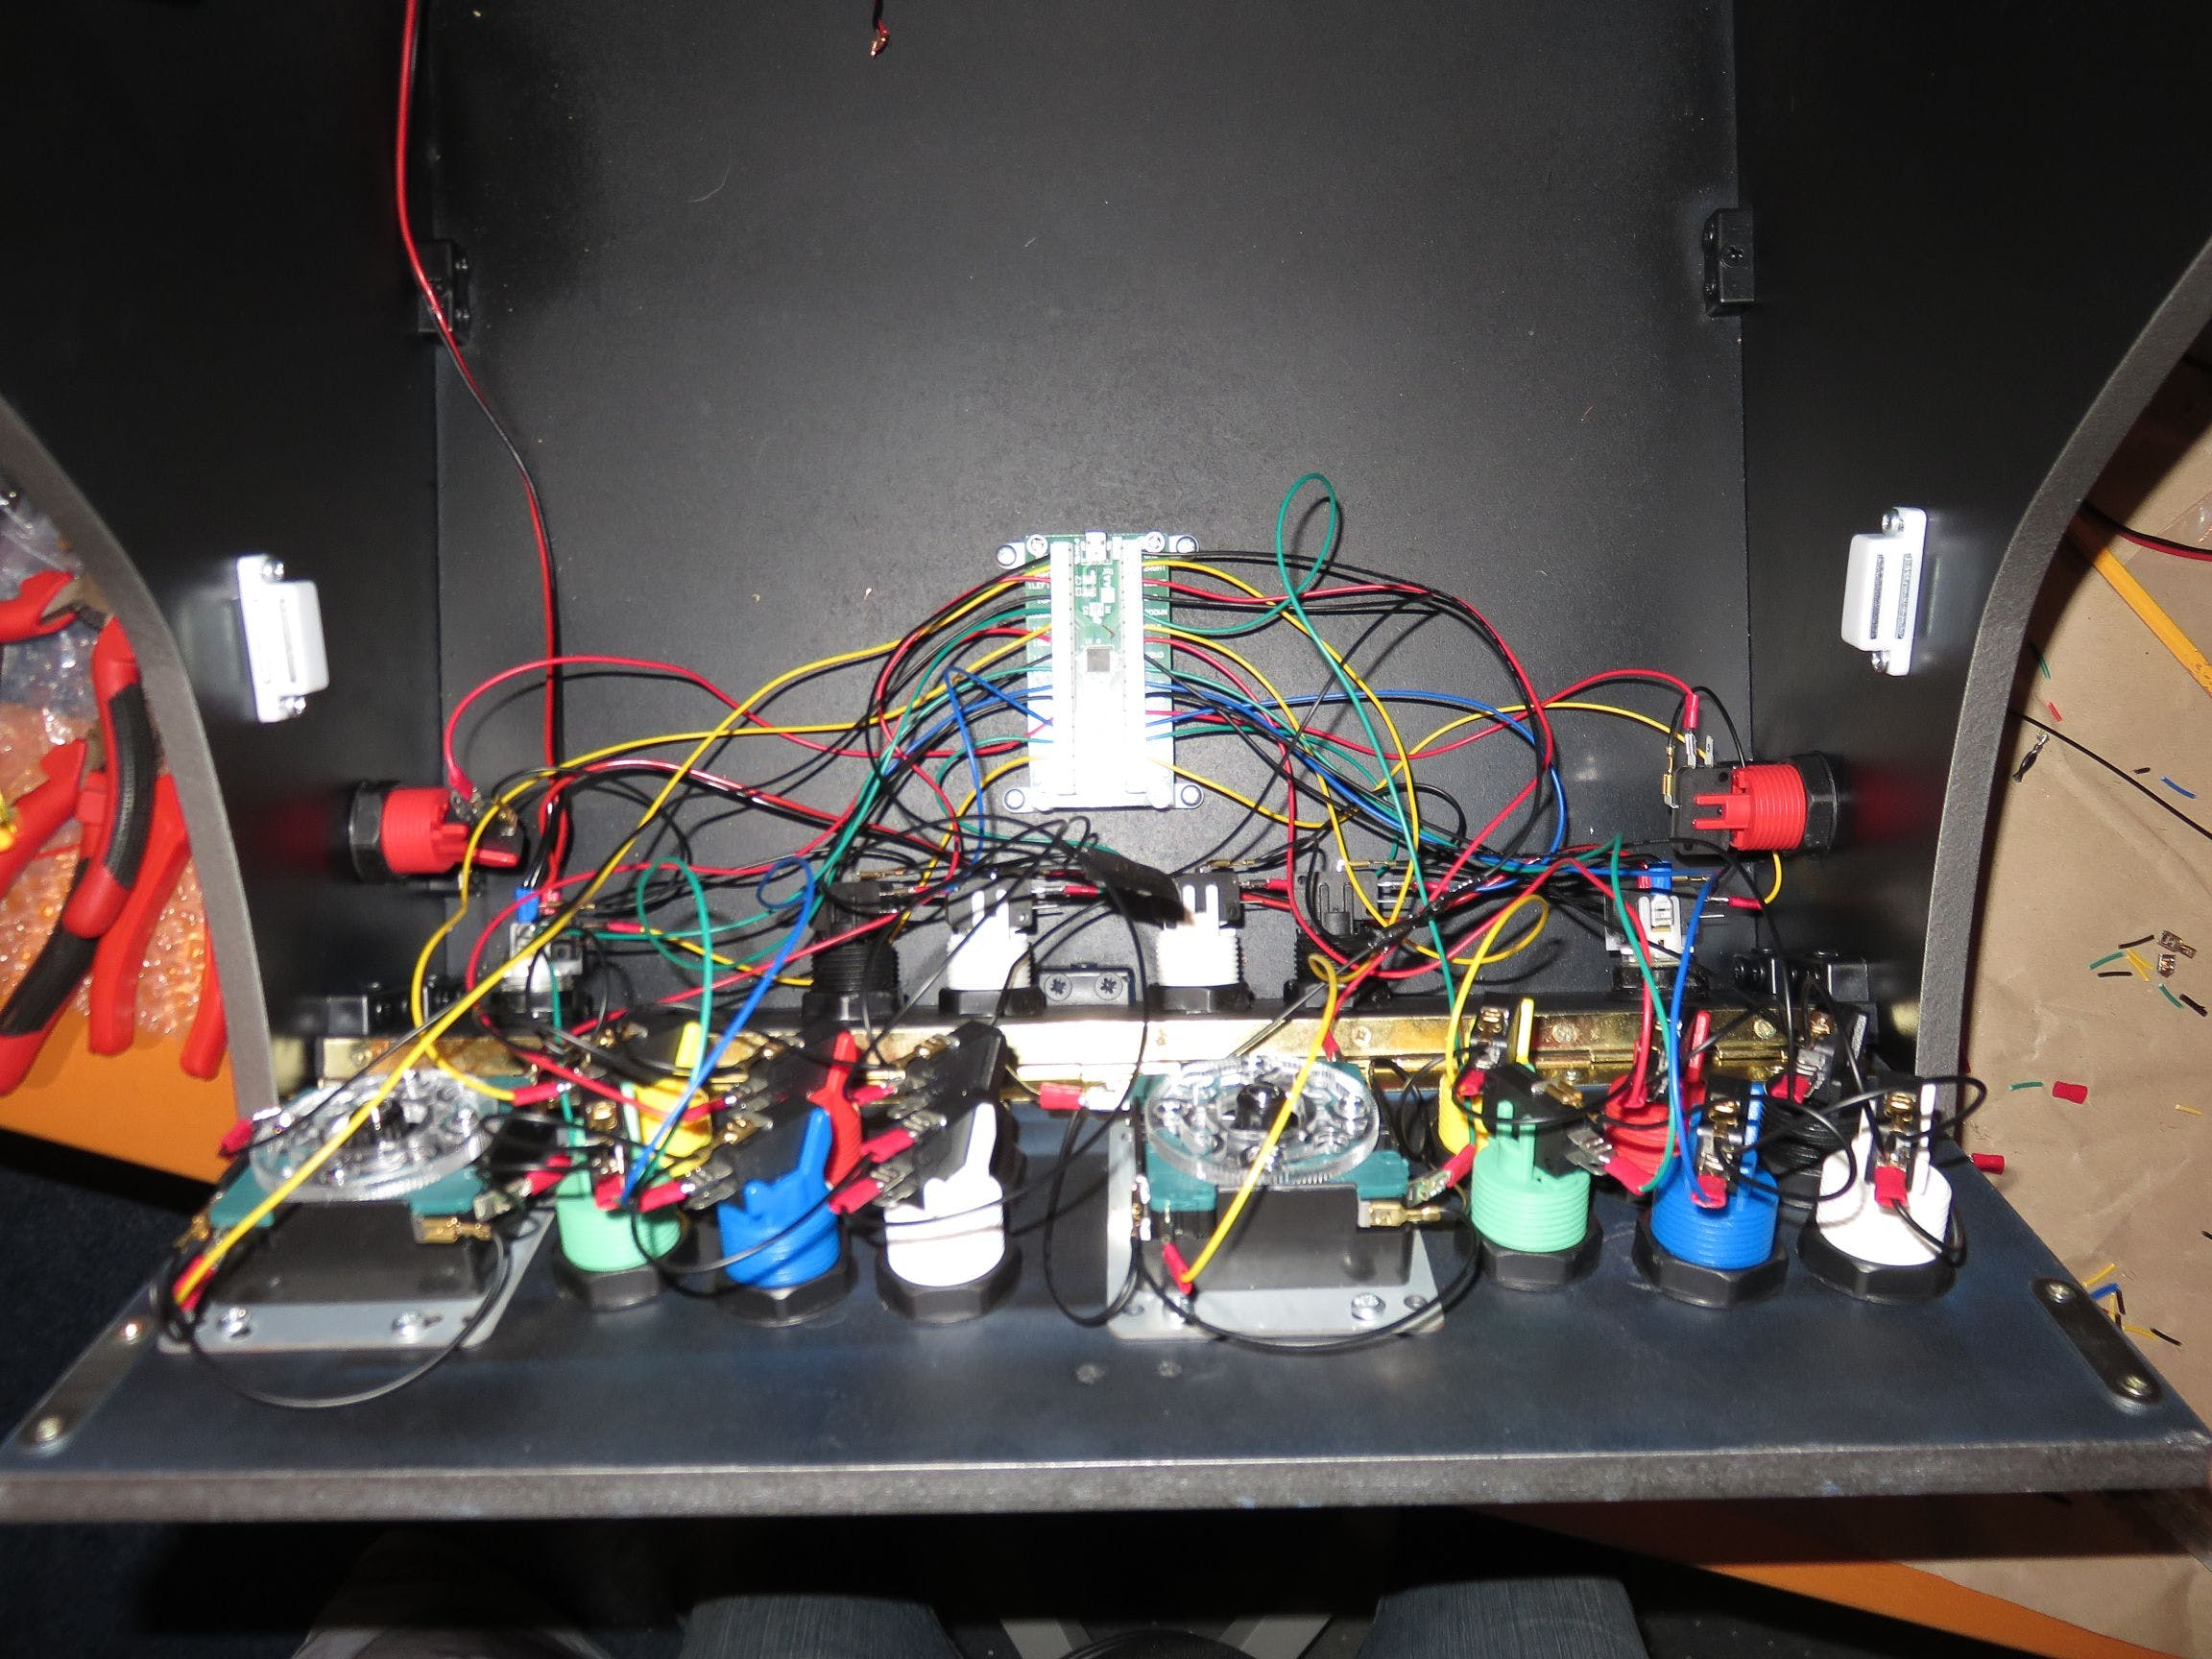 installing and connecting the joysticks and buttons